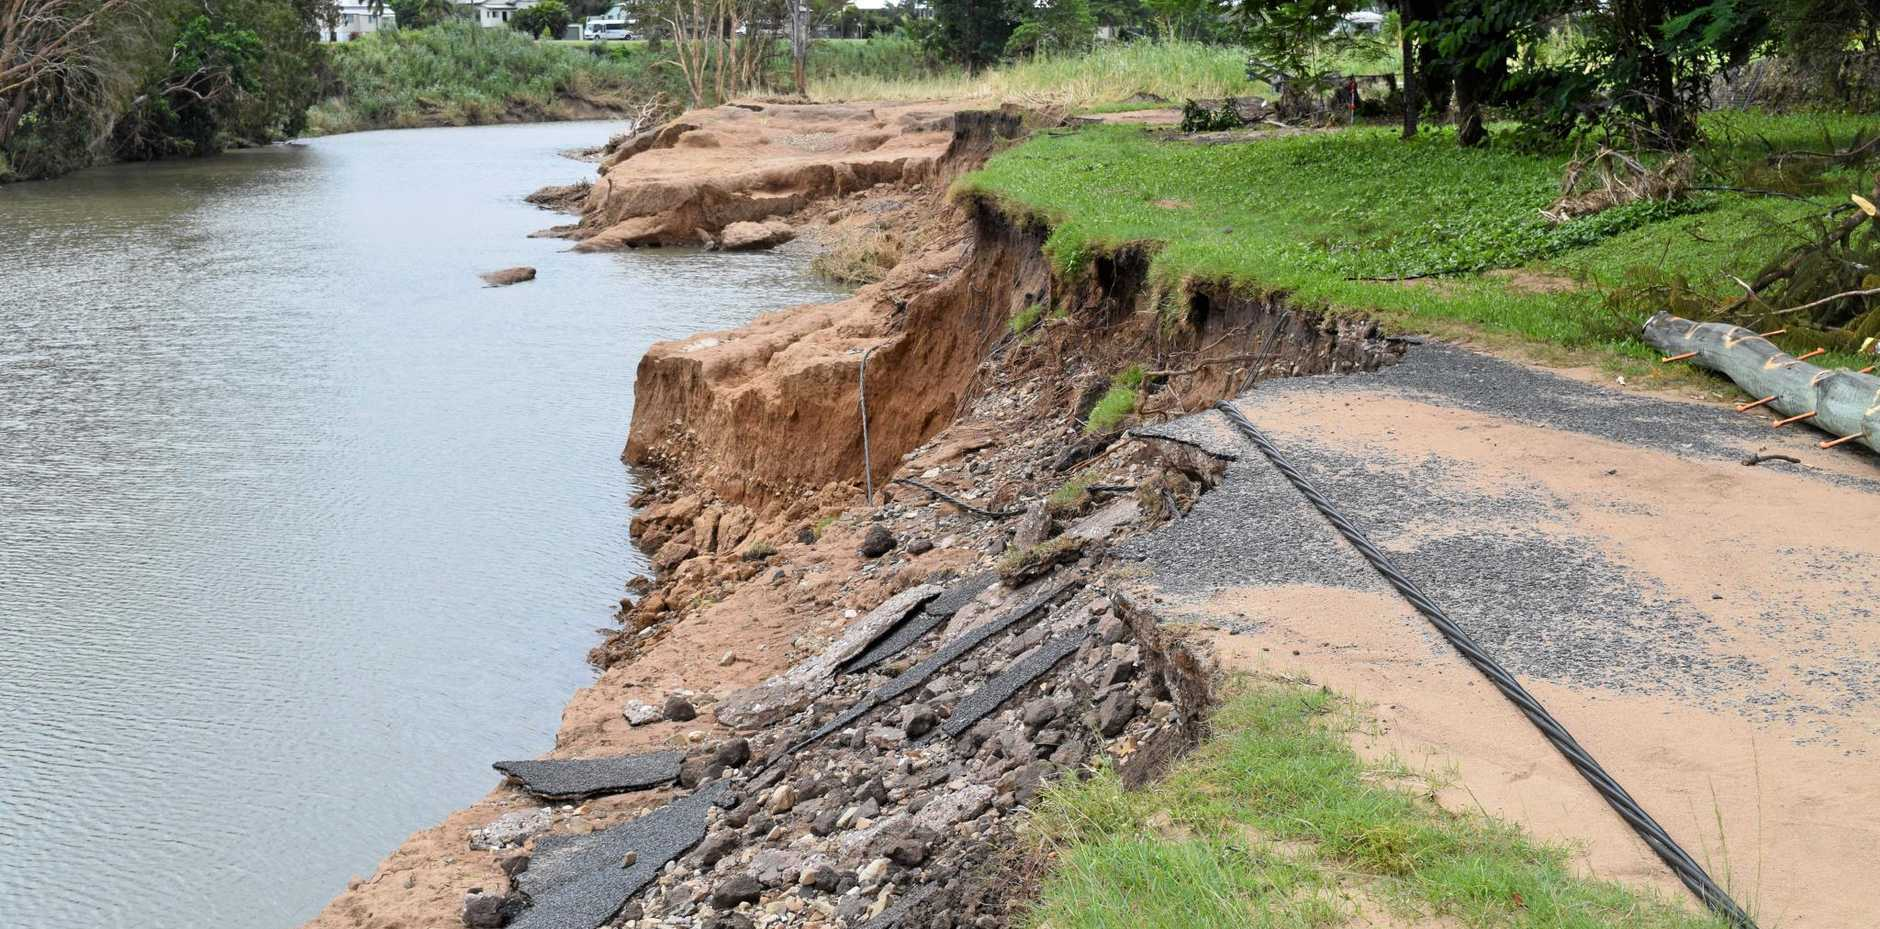 FLOODPLAIN: Sarina residents want a rainforest removed to stop future damage from Plane Creek flooding.